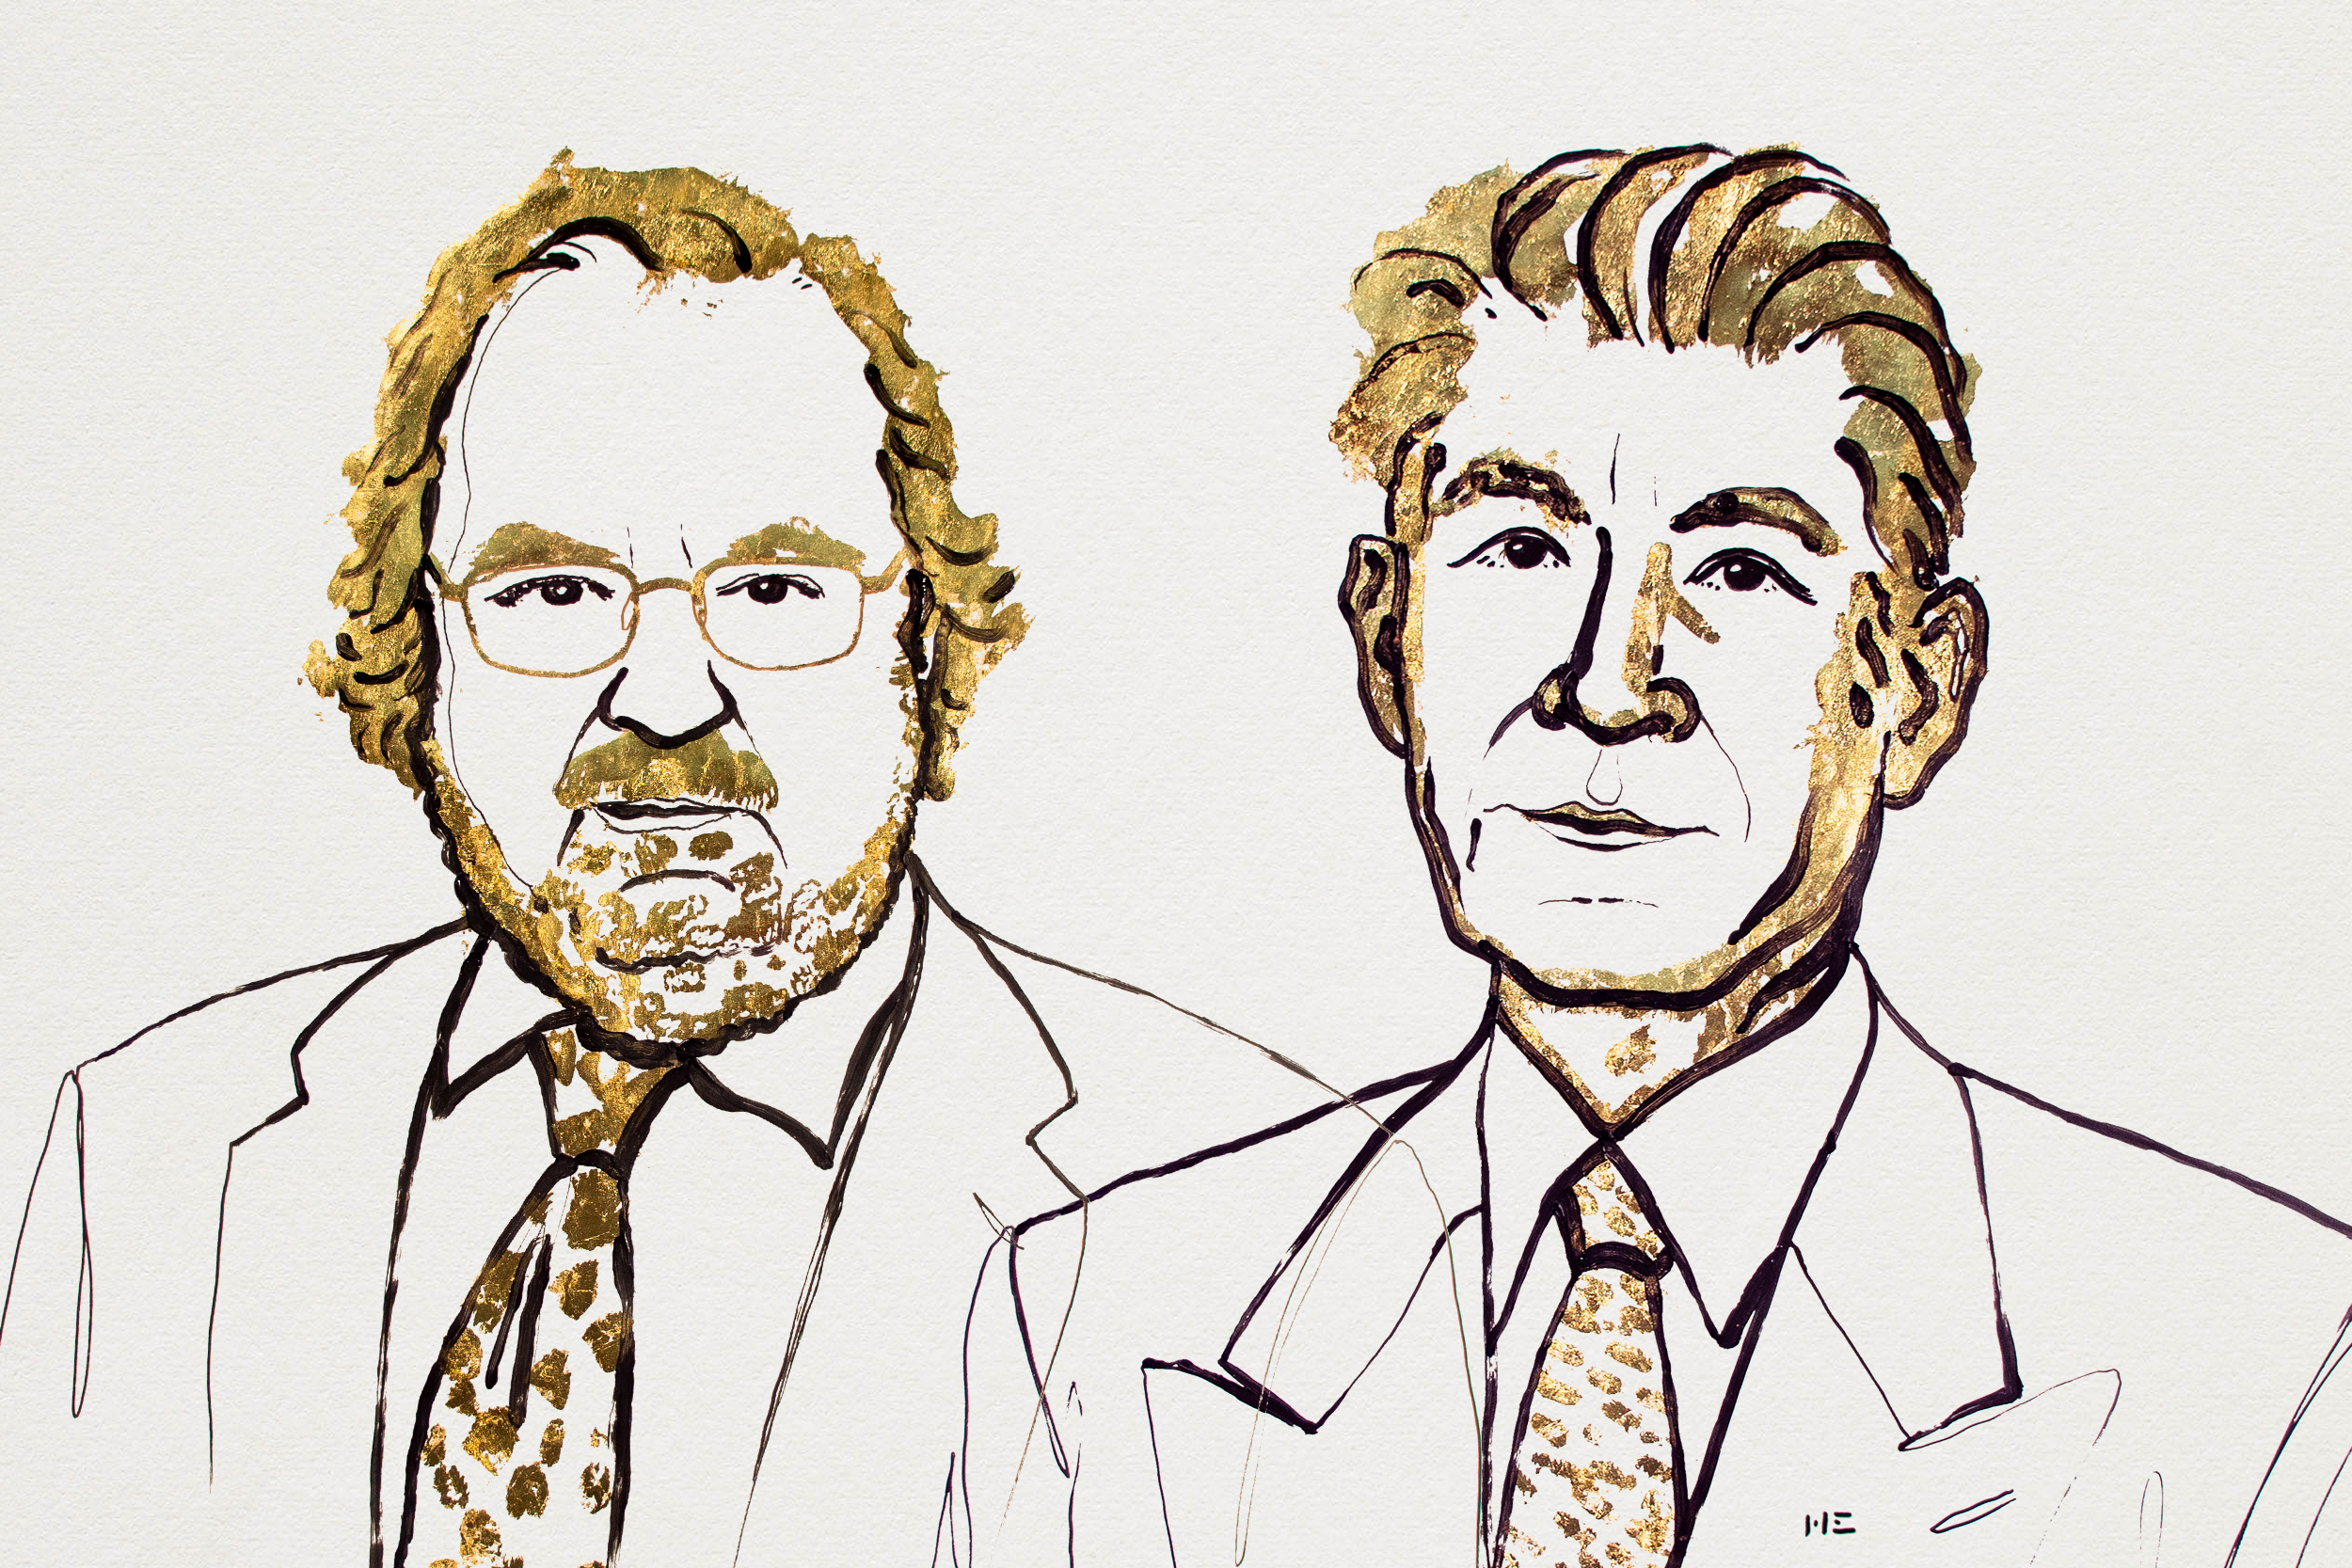 James P. Allison och Takusu Honjo. Illustration: Niklas Elmehed